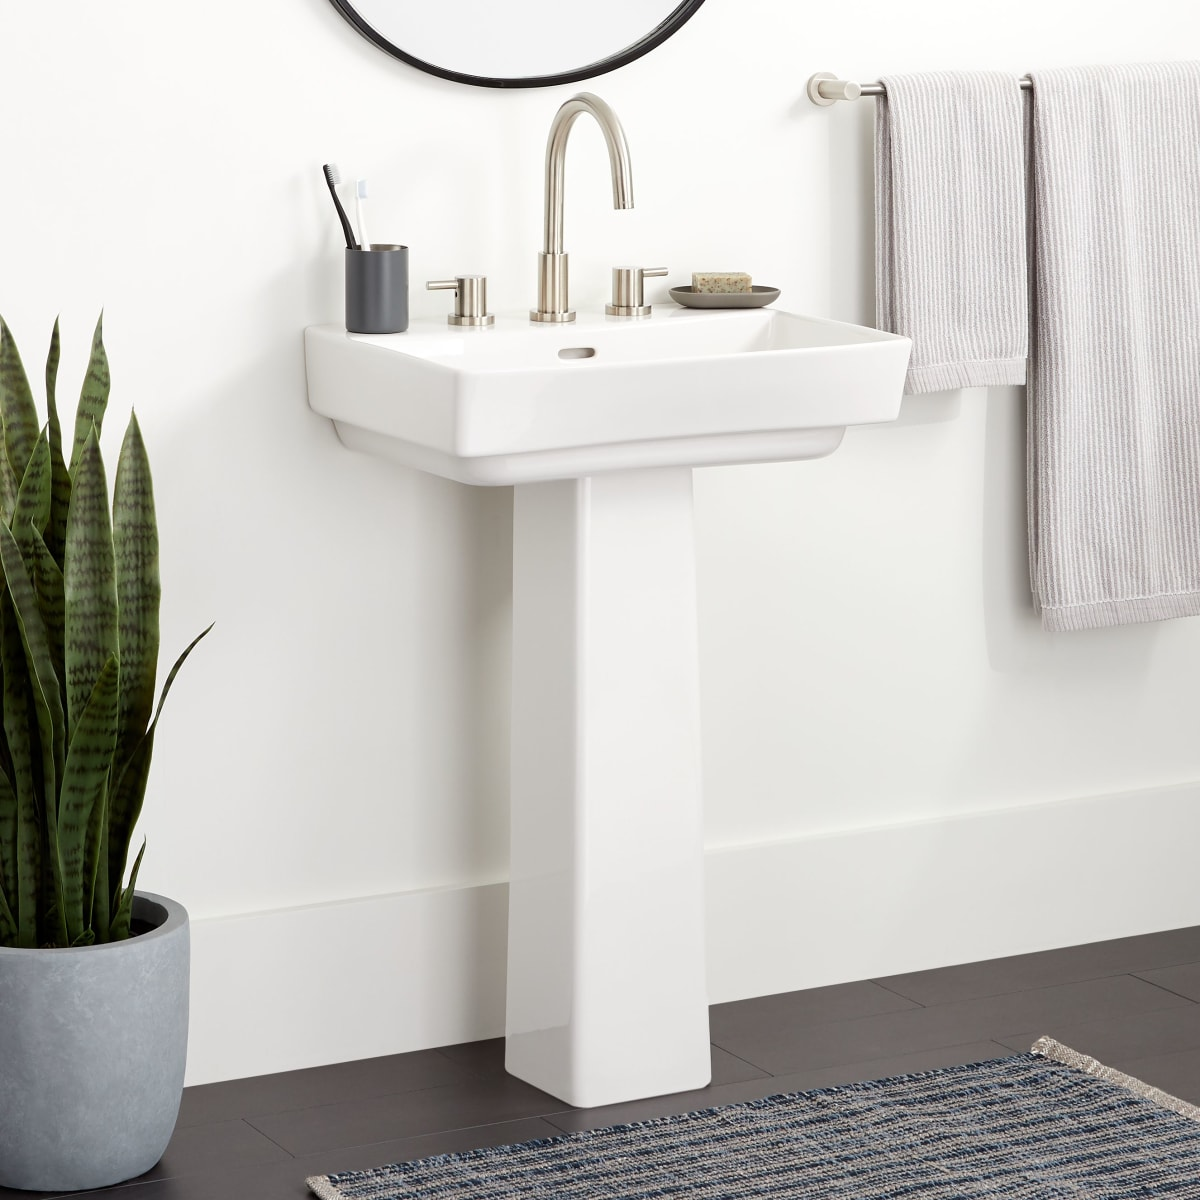 Signature Hardware 459529 White Pentero 23 Fireclay Pedestal Bathroom Sink With 3 Faucet Holes And 8 Centers Faucetdirect Com